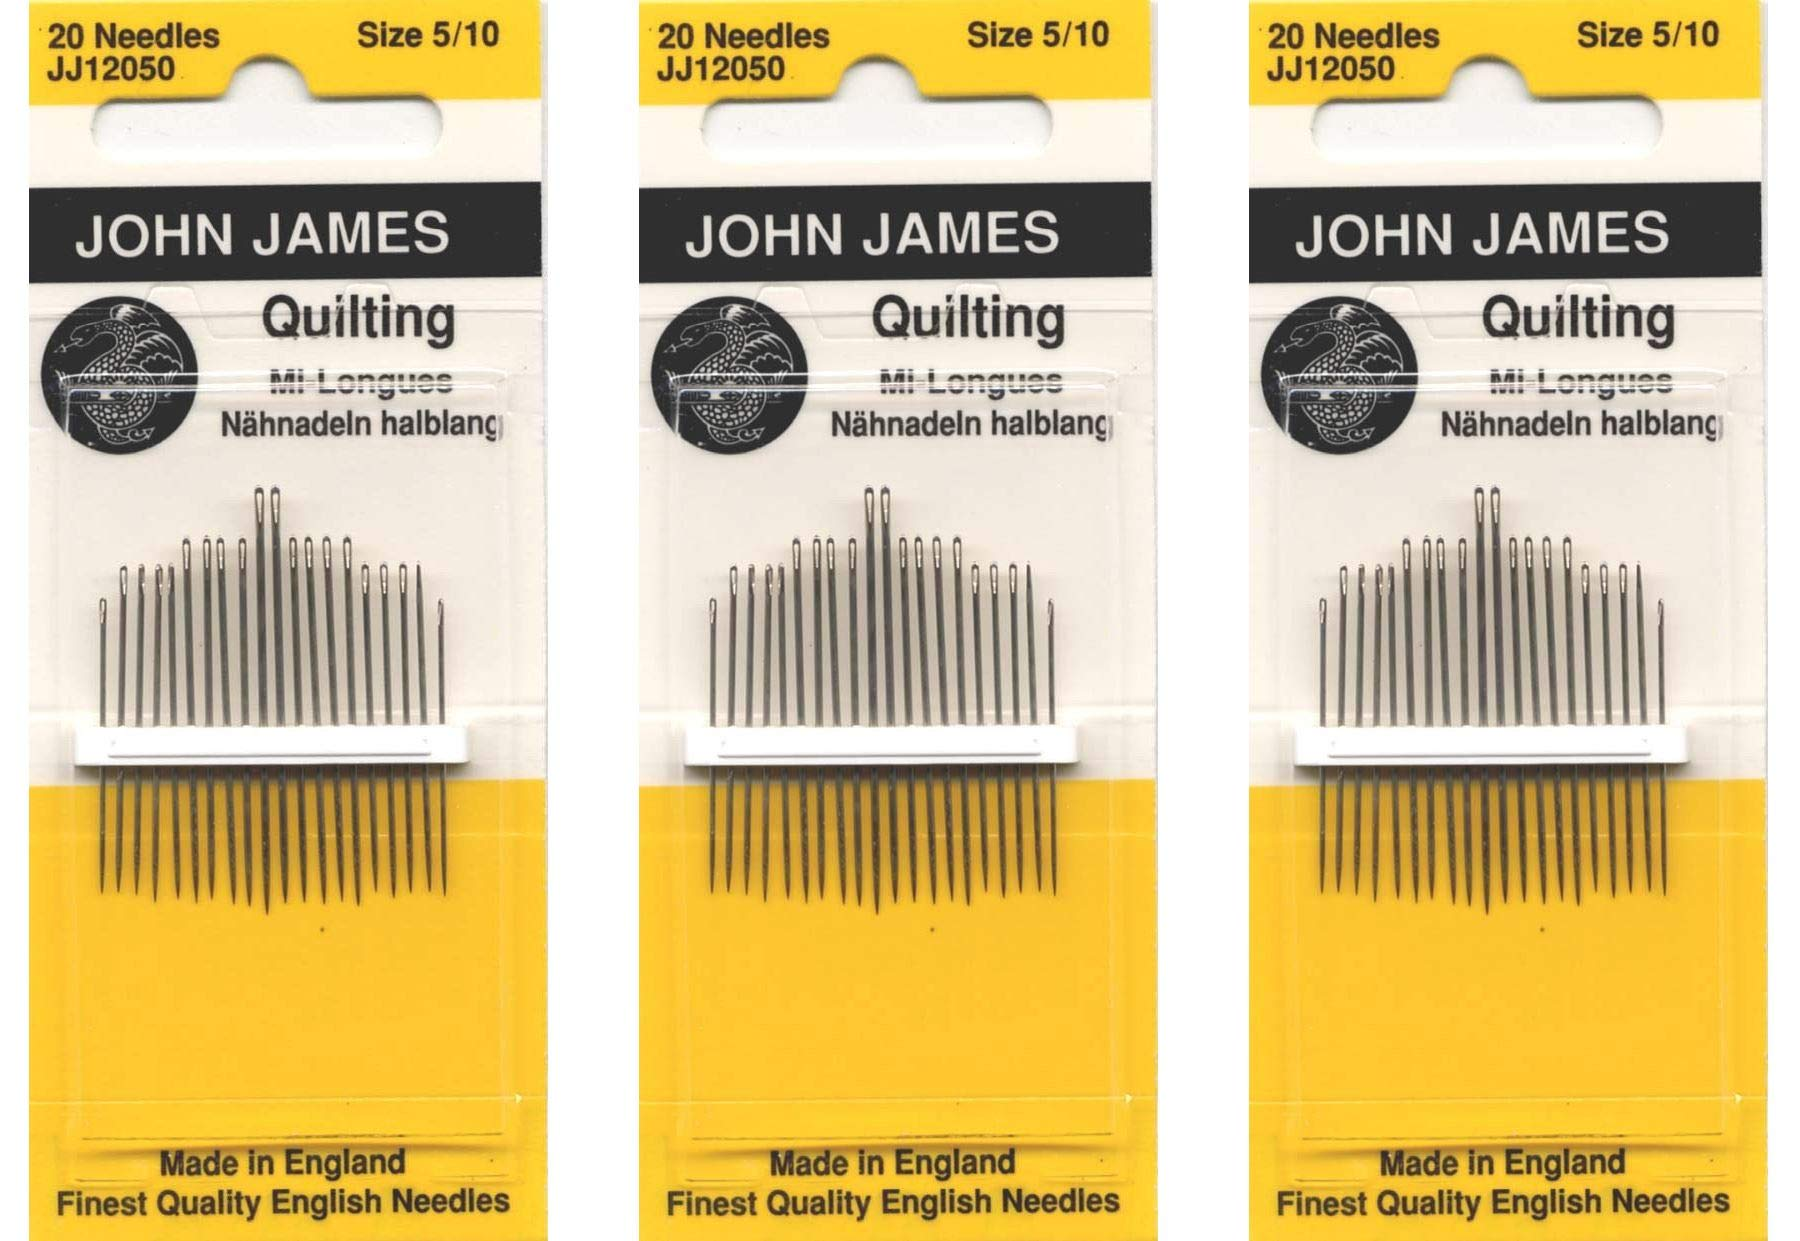 Colonial Needle Quilting/Betweens Hand Needles-Size 5/10 20/Pkg (Тhree Pаck) by Colonial Needle